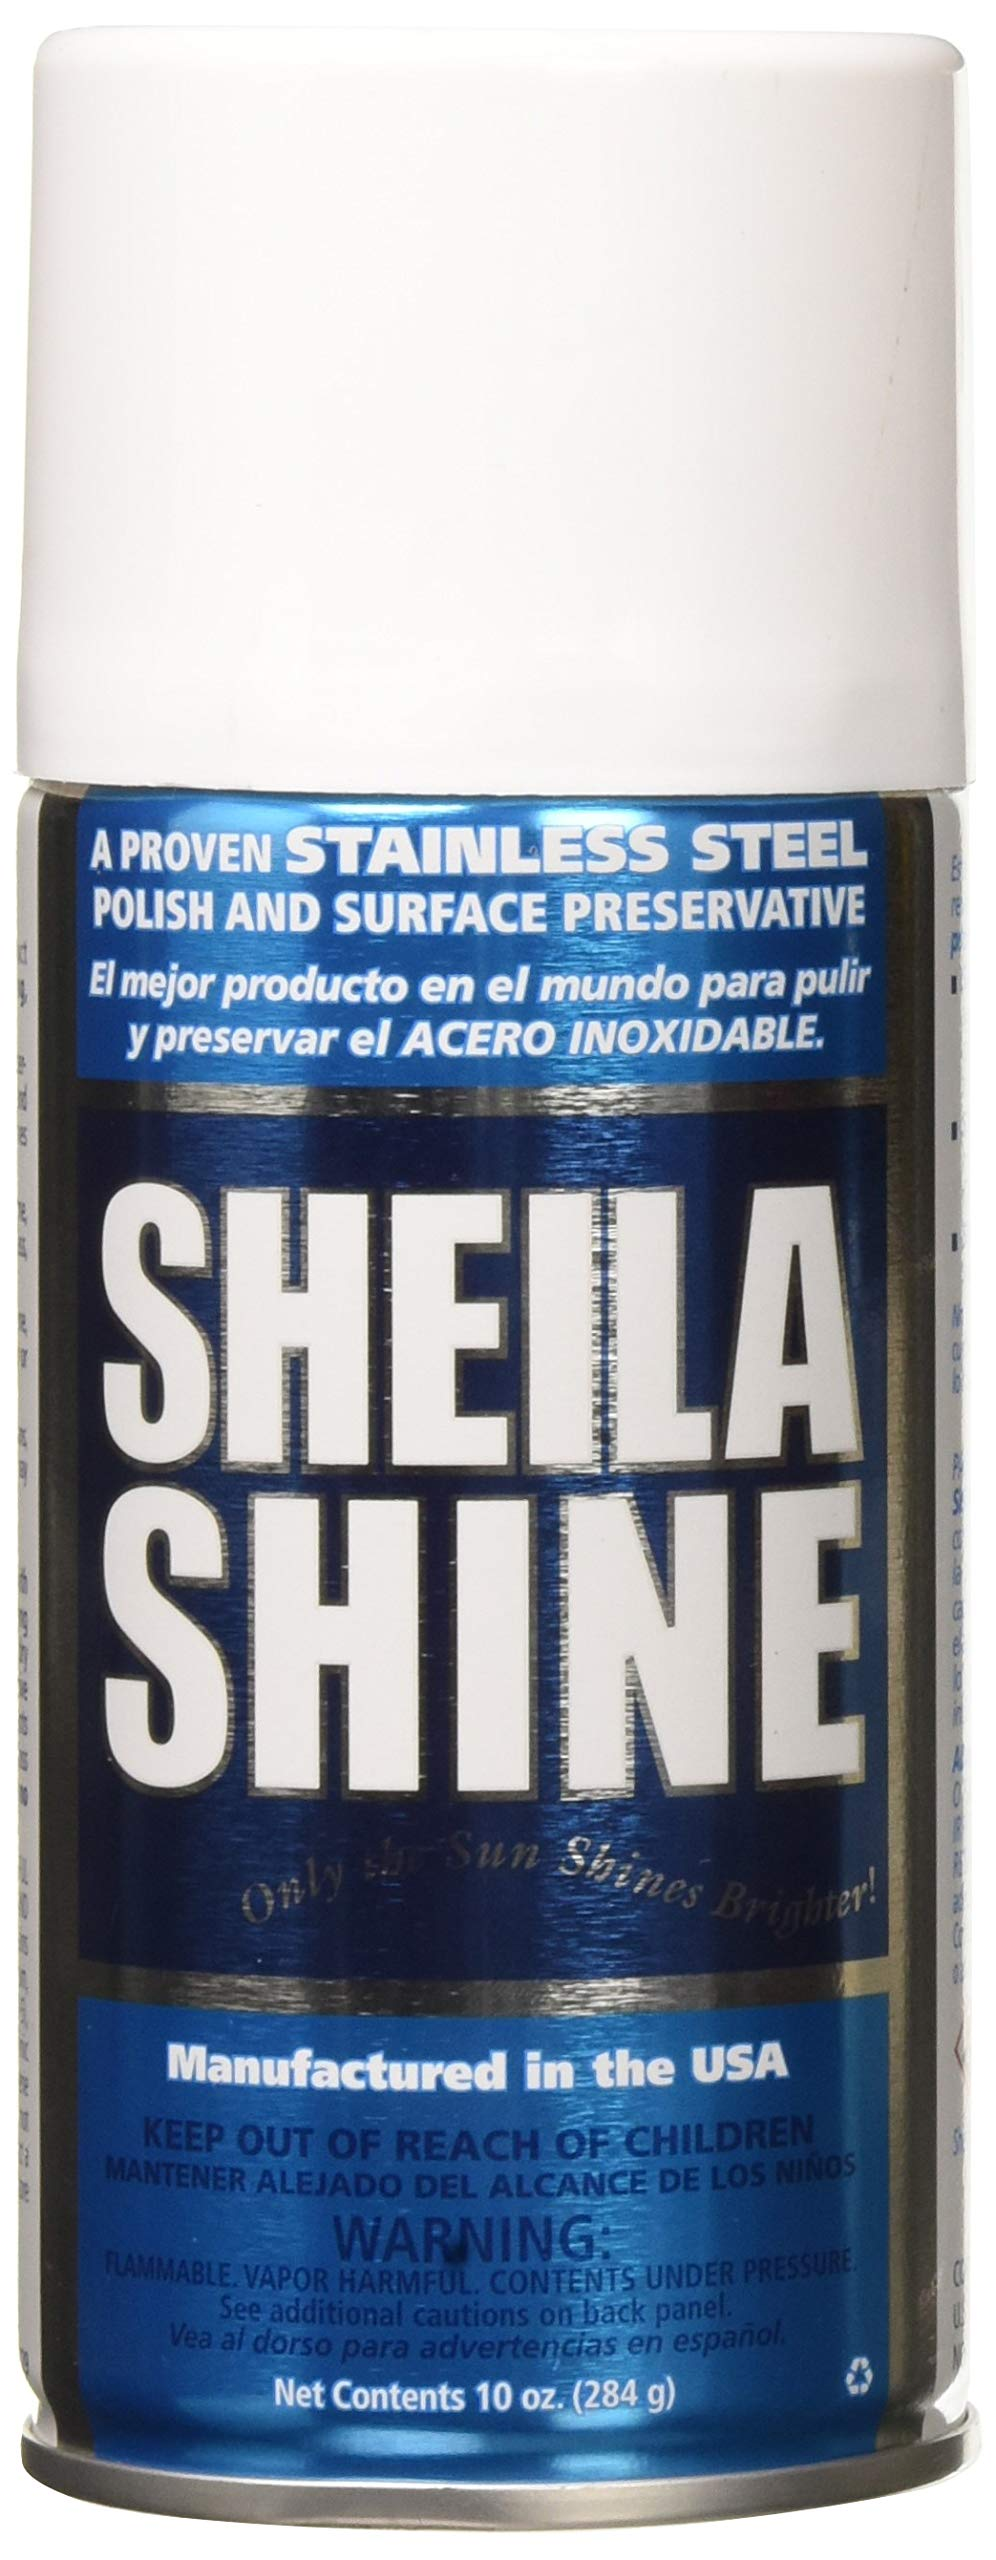 SHE1EA - Sheila Shine Stainless Steel Cleaner amp;amp; Polish (Pack of 3) by Sheila Shine